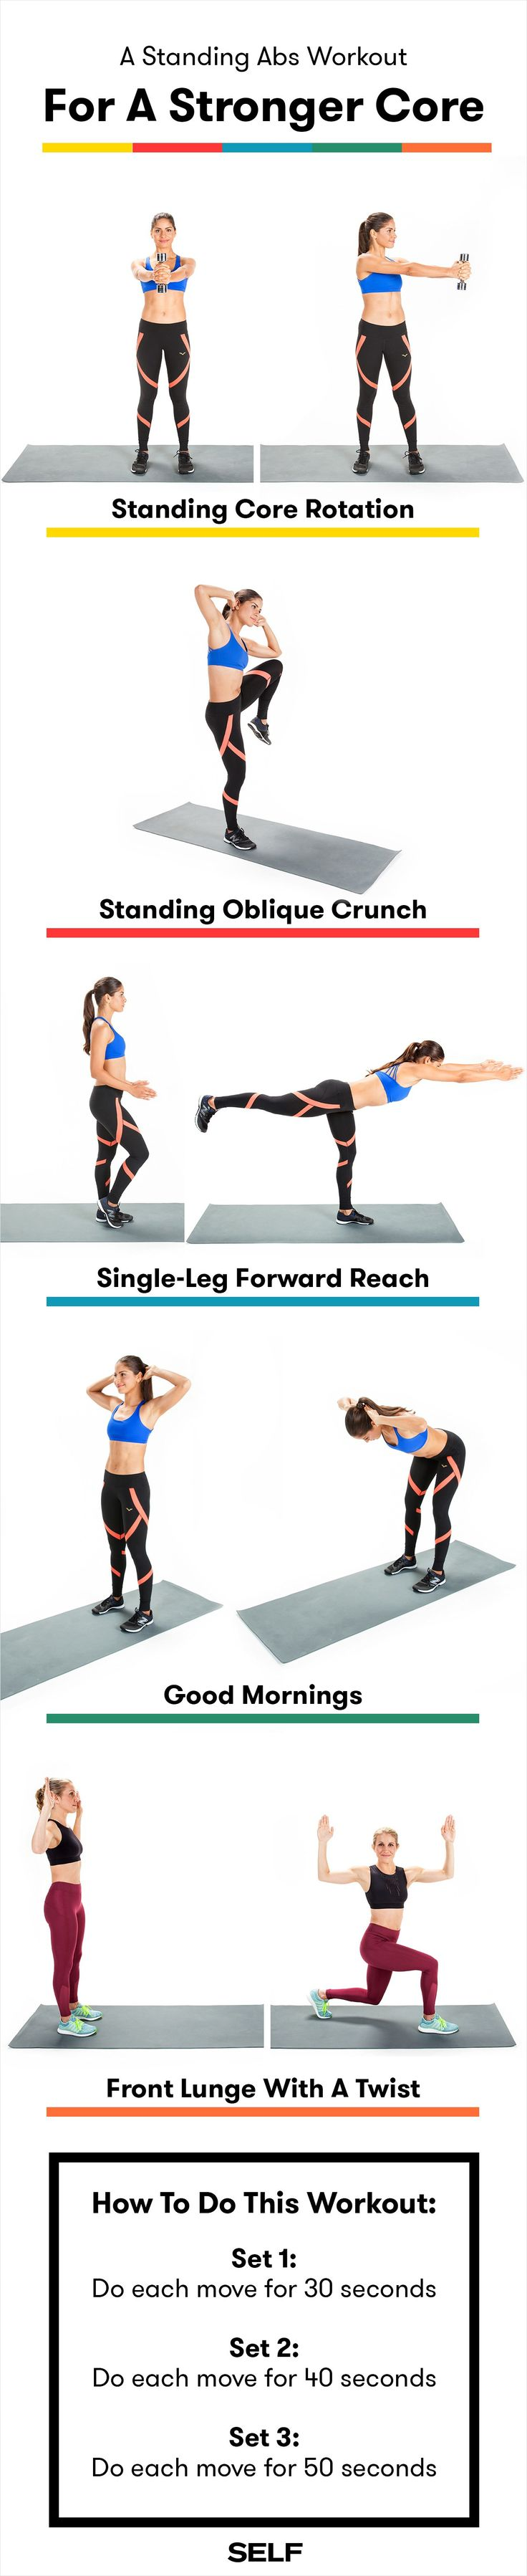 The Standing Abs Workout For A Strong, Firm Core